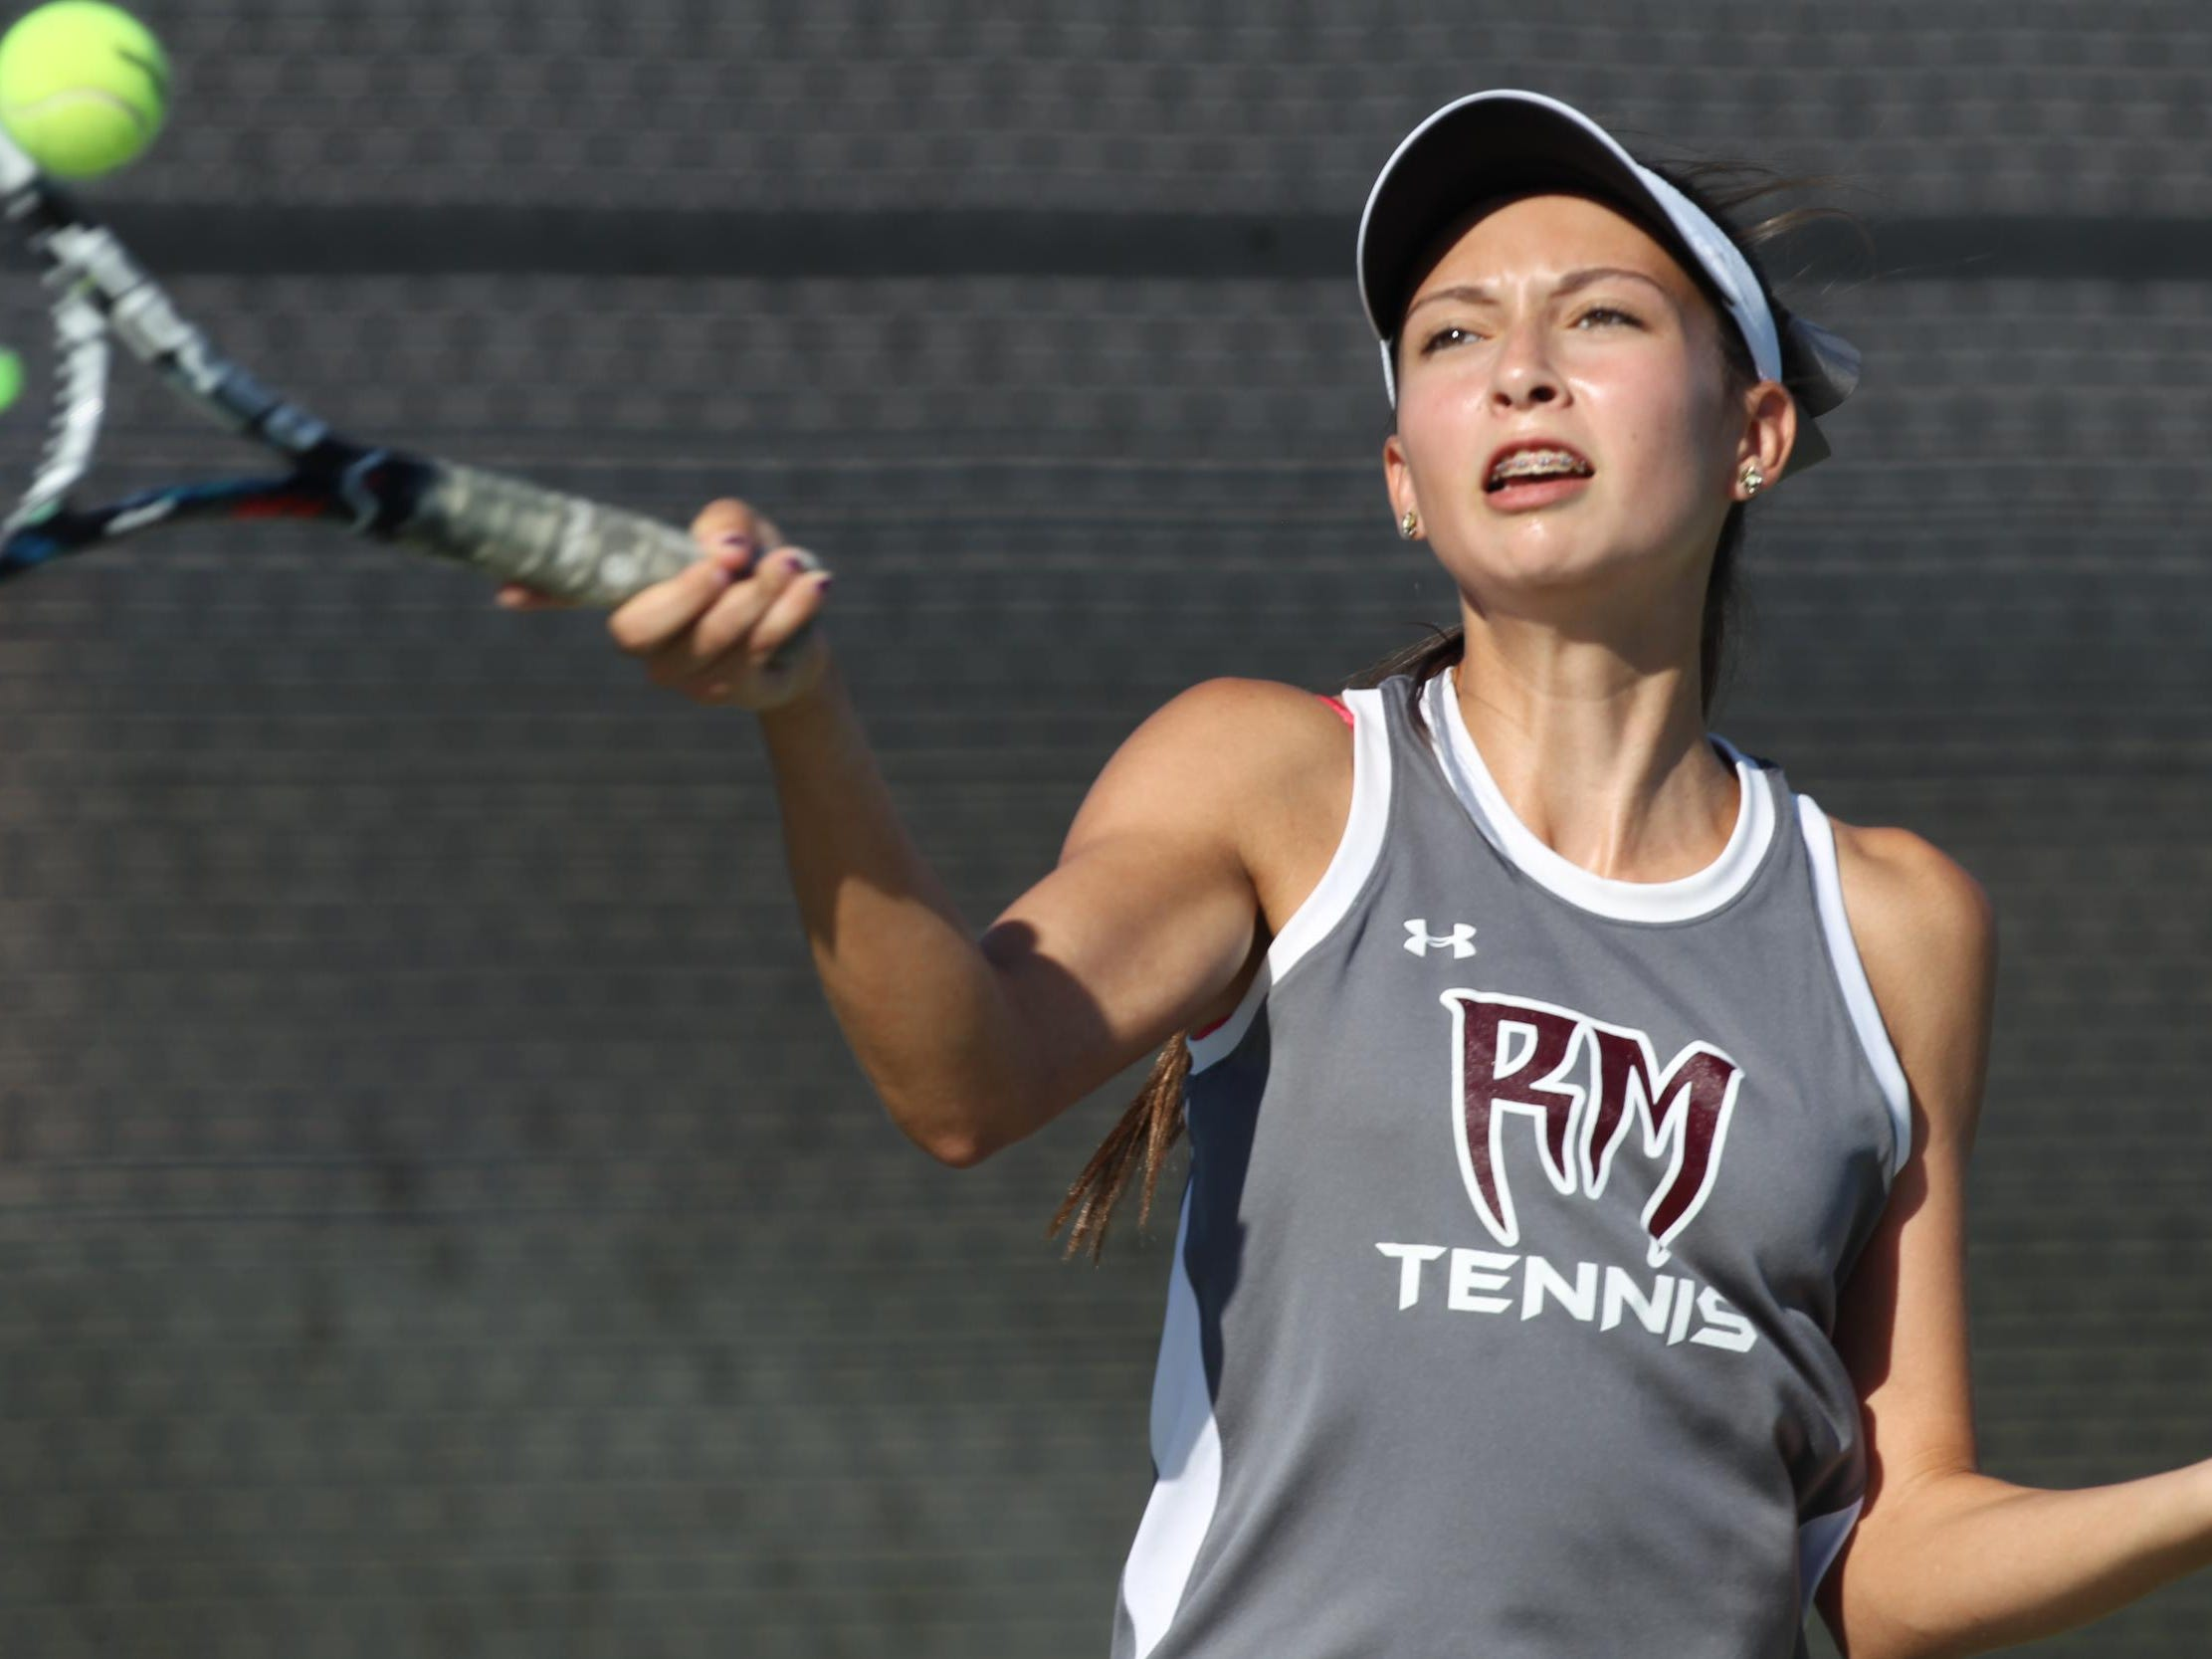 Tatiana Harvey of Rancho Mirage High School, seen here in a file photo, won back-to-back De Anza invidual tennis titles, completing her perfect league run earlier this week.